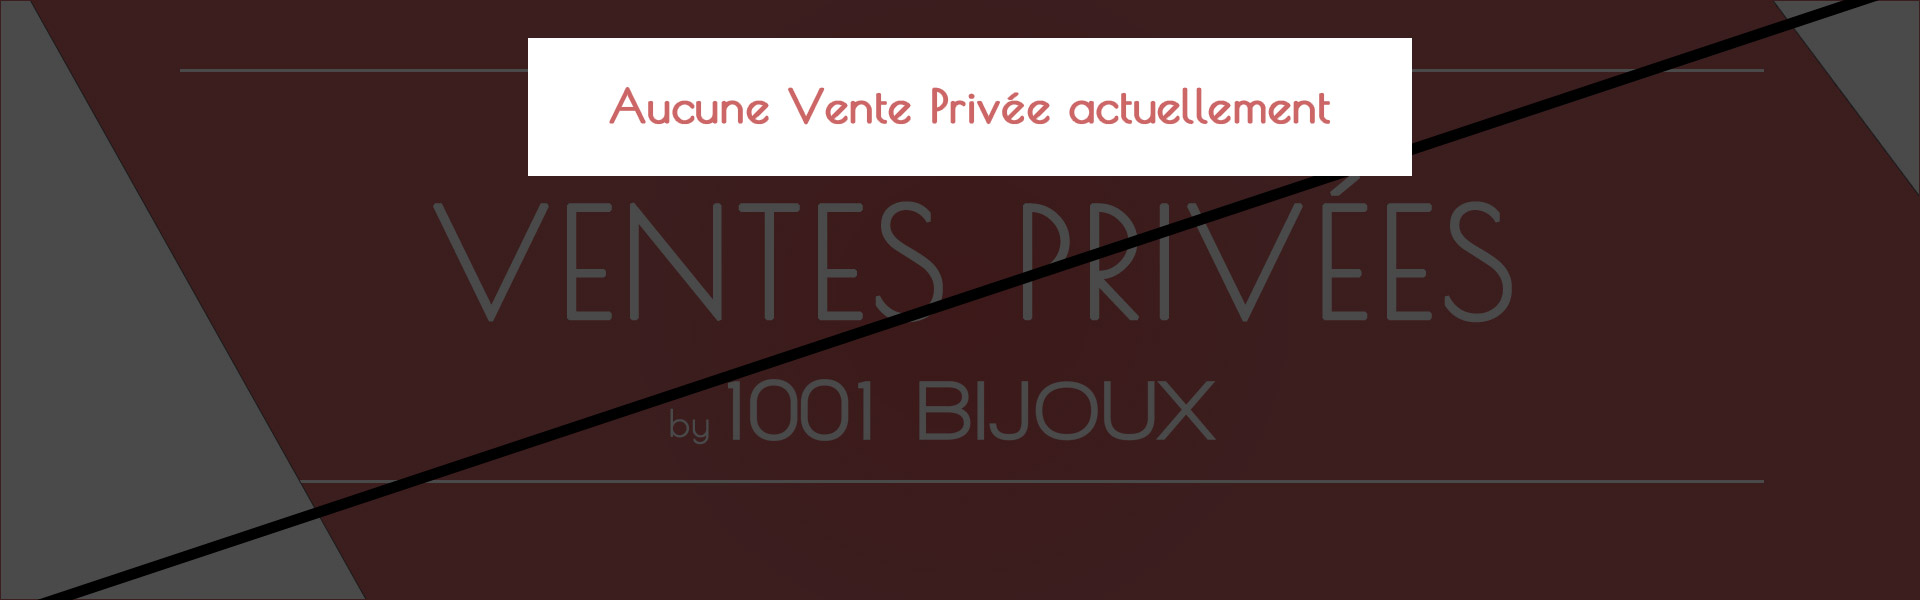 Ventes Privées by 1001 Bijoux